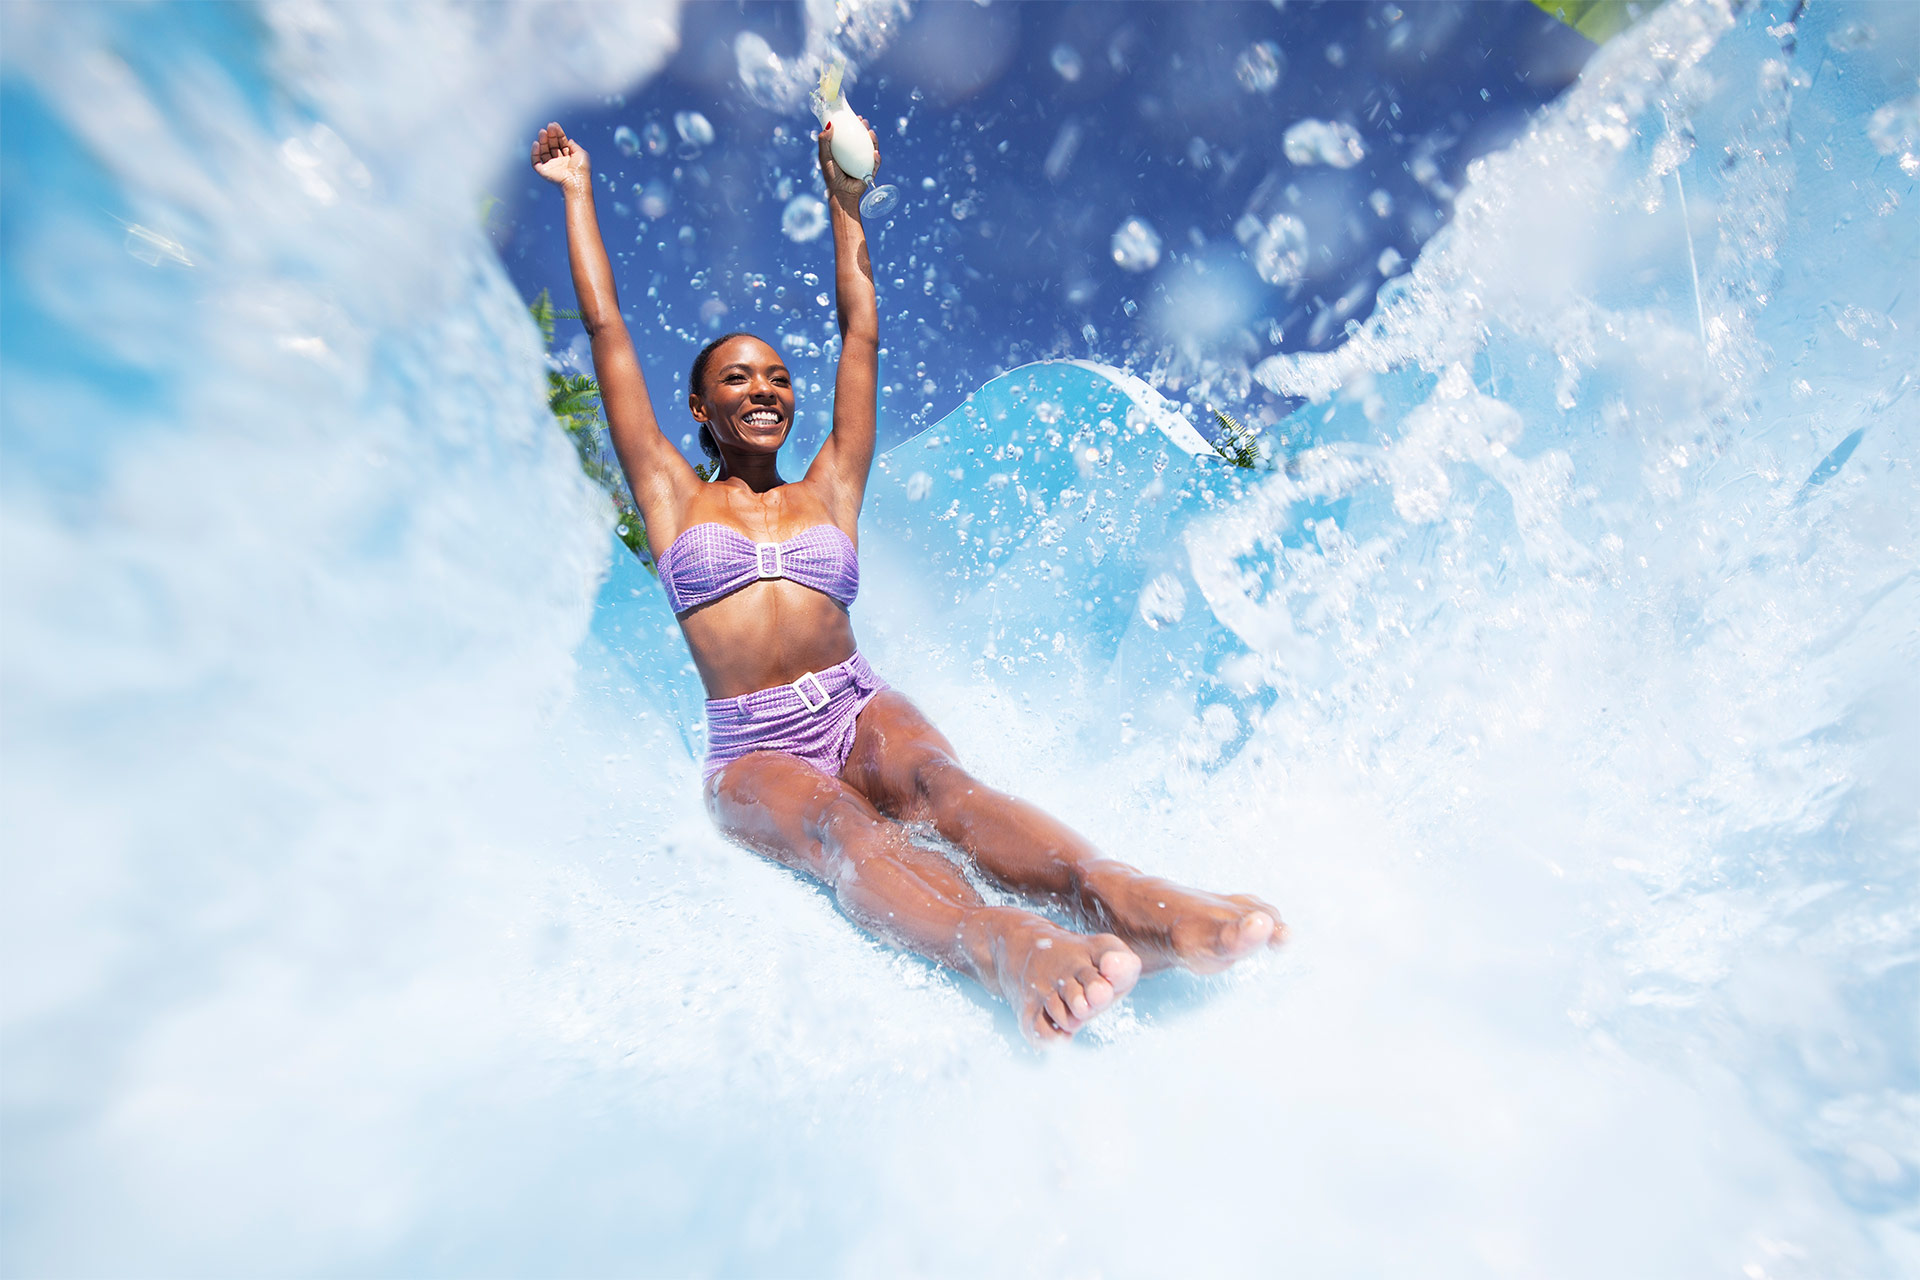 a woman in a purple bikini riding down a waterslide